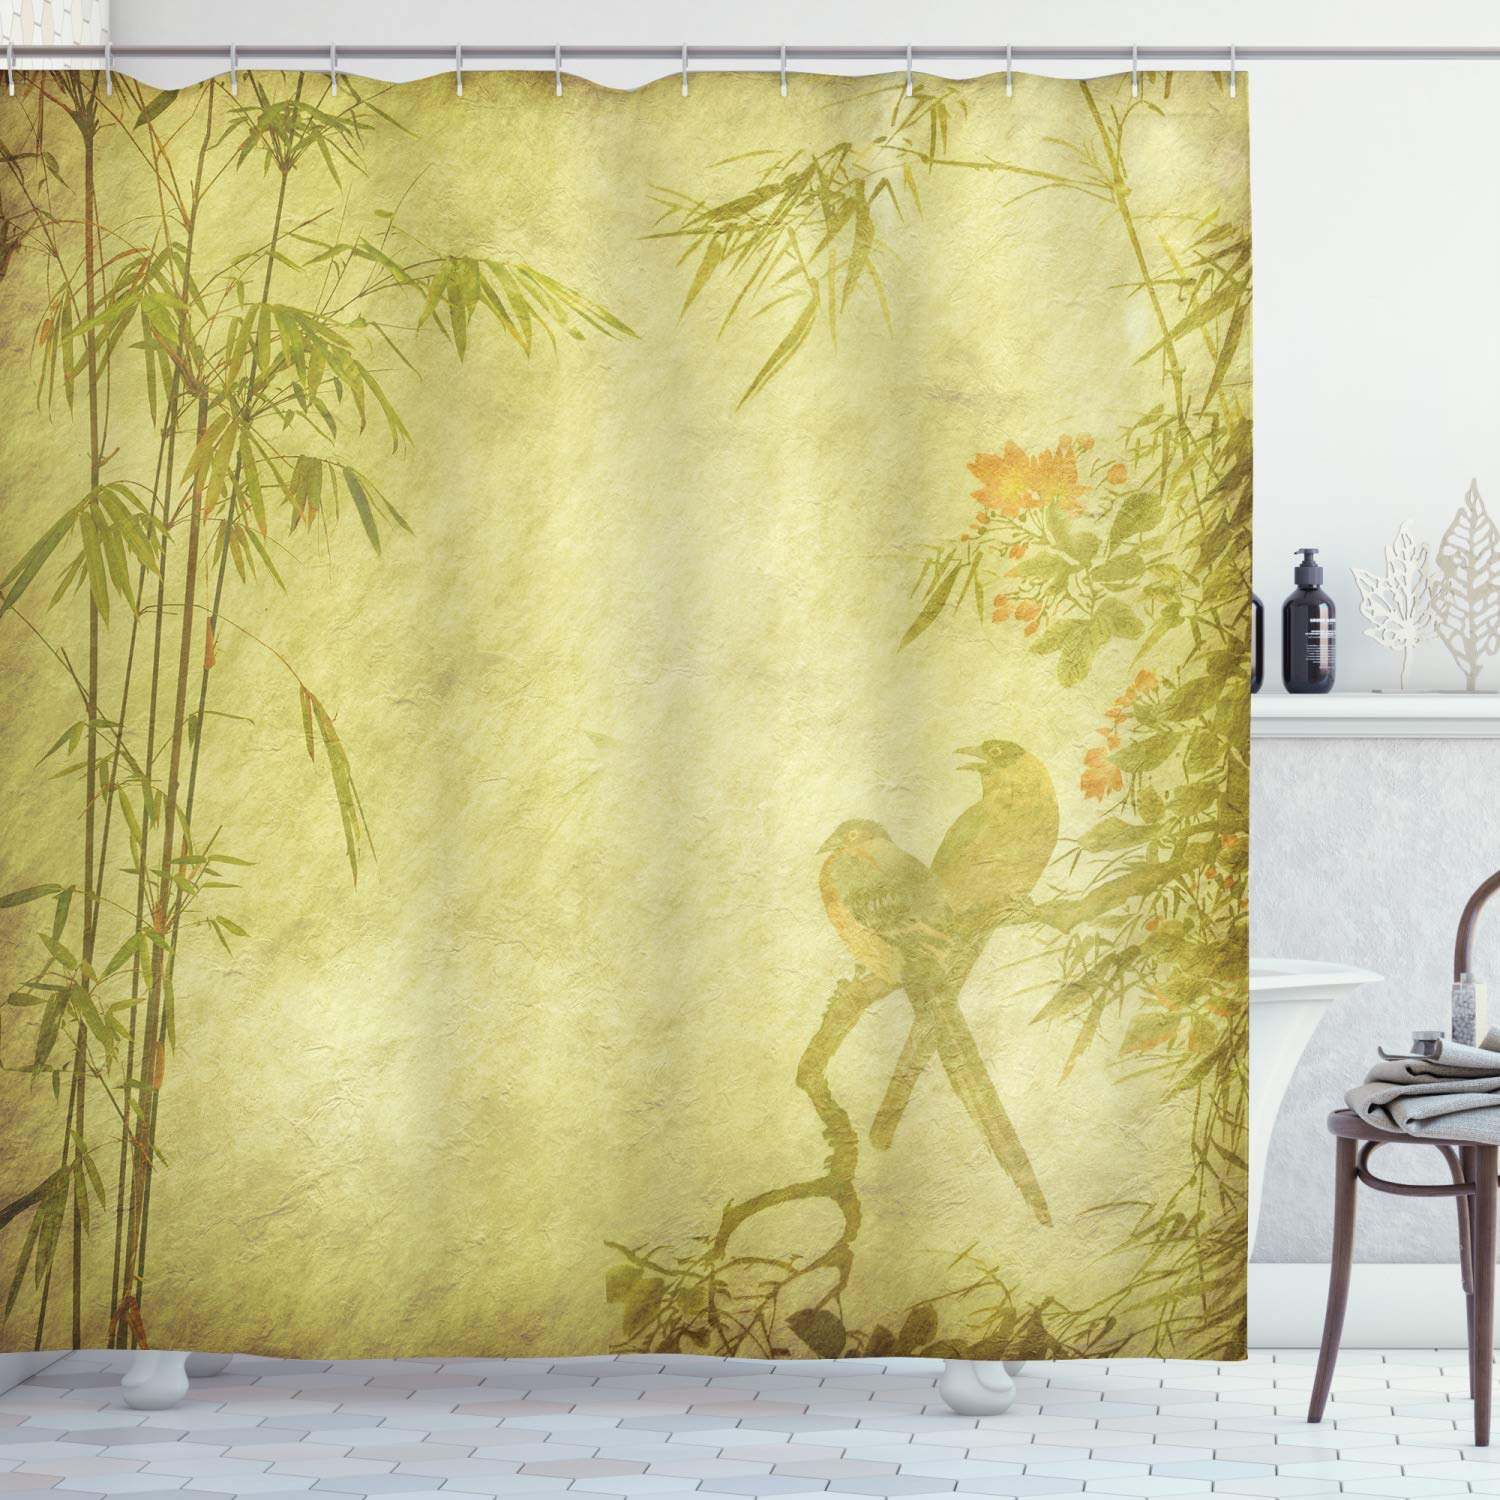 Bamboo Shower Curtain Silhouettes Of Birds On The Branch And